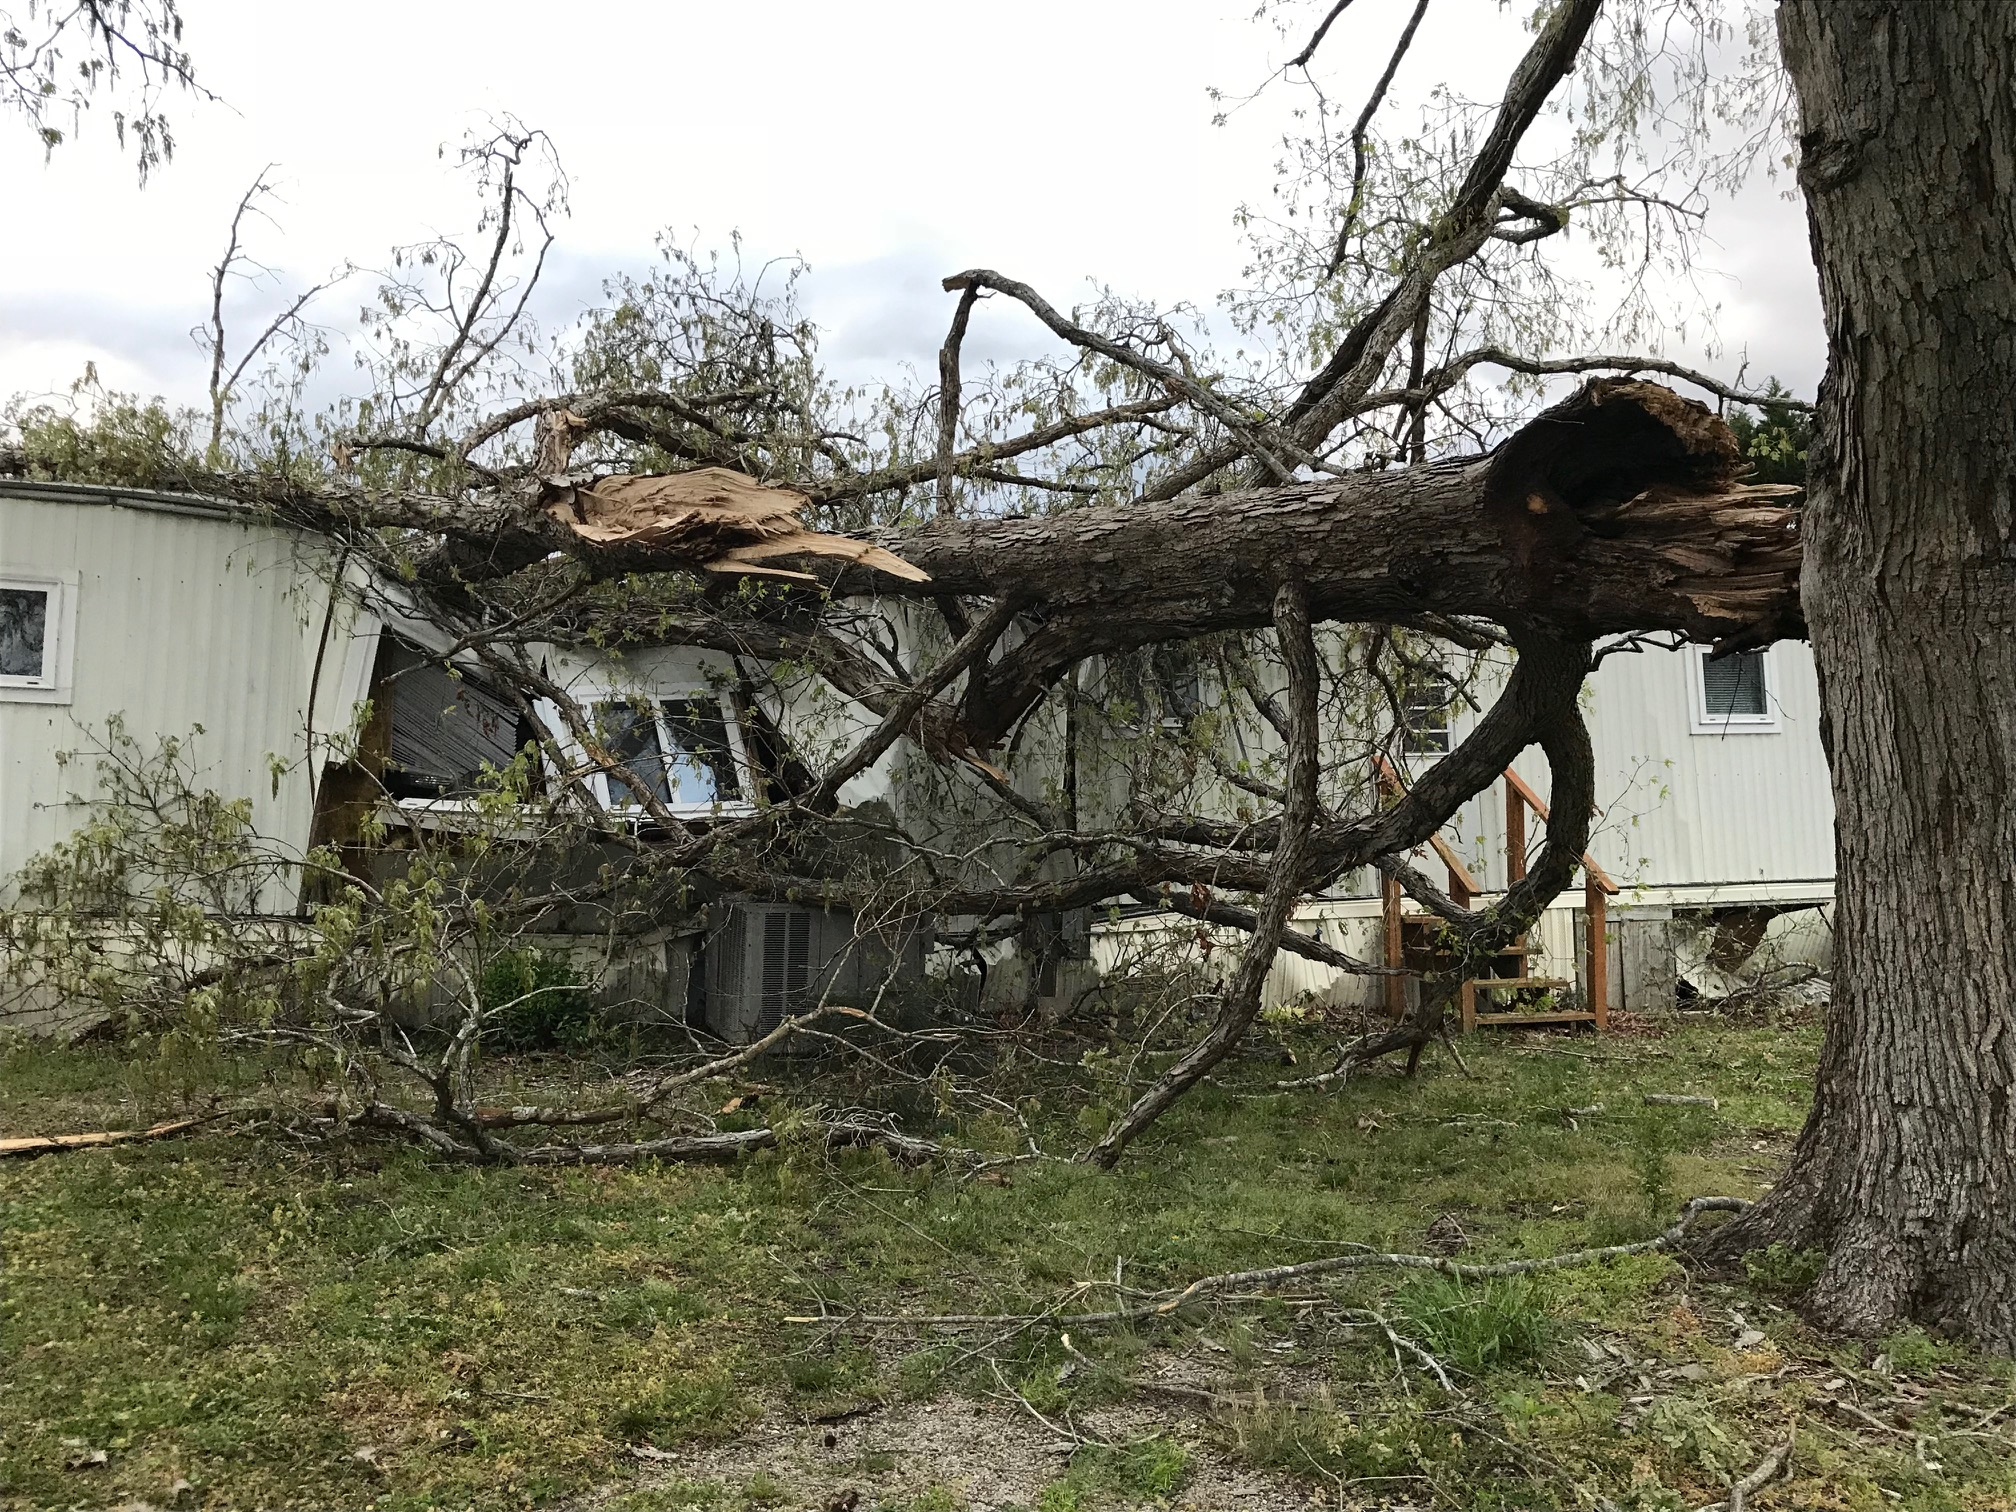 <div class='meta'><div class='origin-logo' data-origin='WTVD'></div><span class='caption-text' data-credit='Robert Judson'>A woman in Wendell had a narrow escape when a tree crashed into her Rees Lane home during the storm.</span></div>